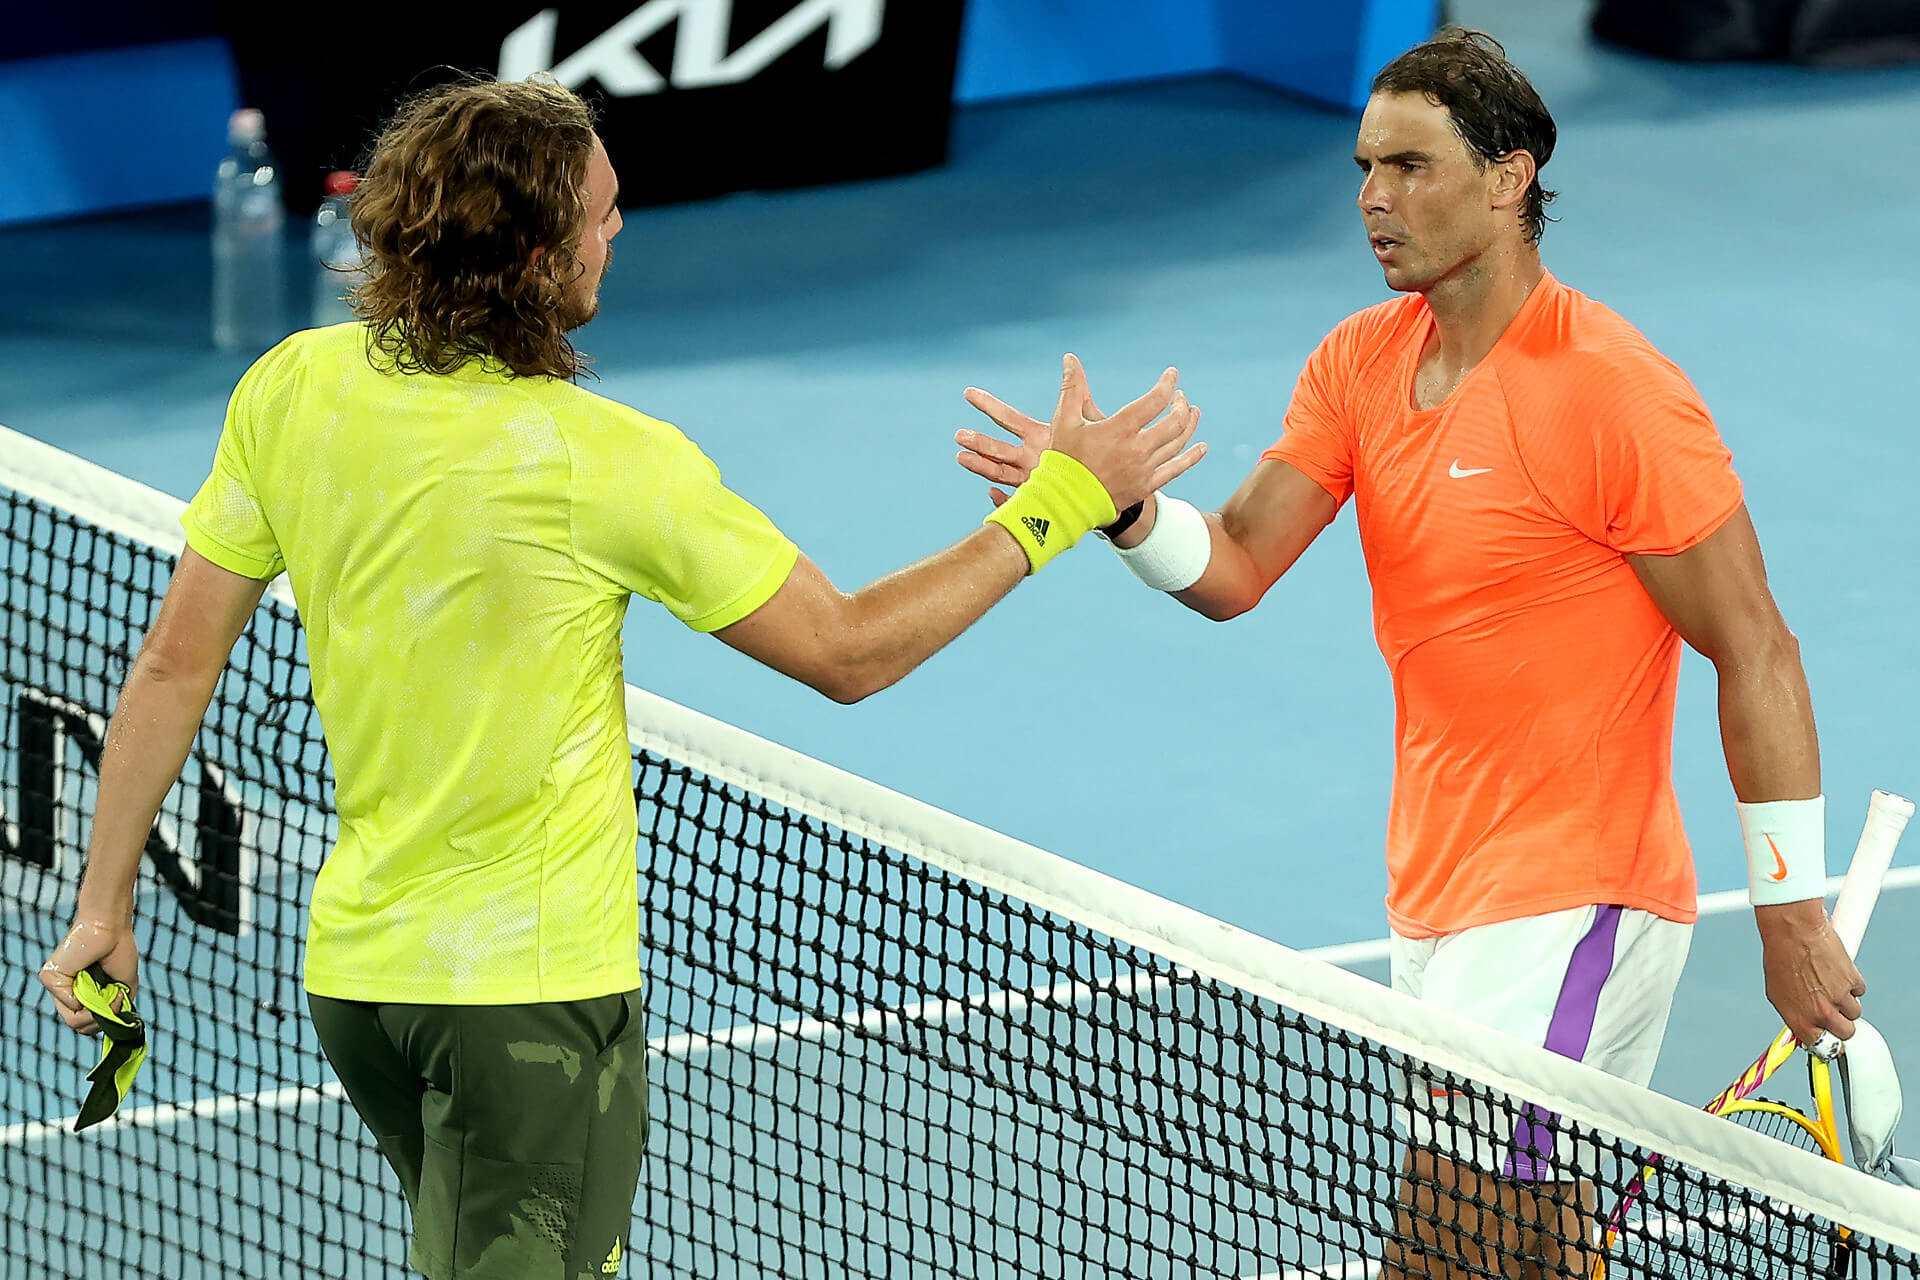 Australian Open 2021: Stefanos Tsitsipas beats Rafael Nadal in 5-set thriller to enter semi-finals